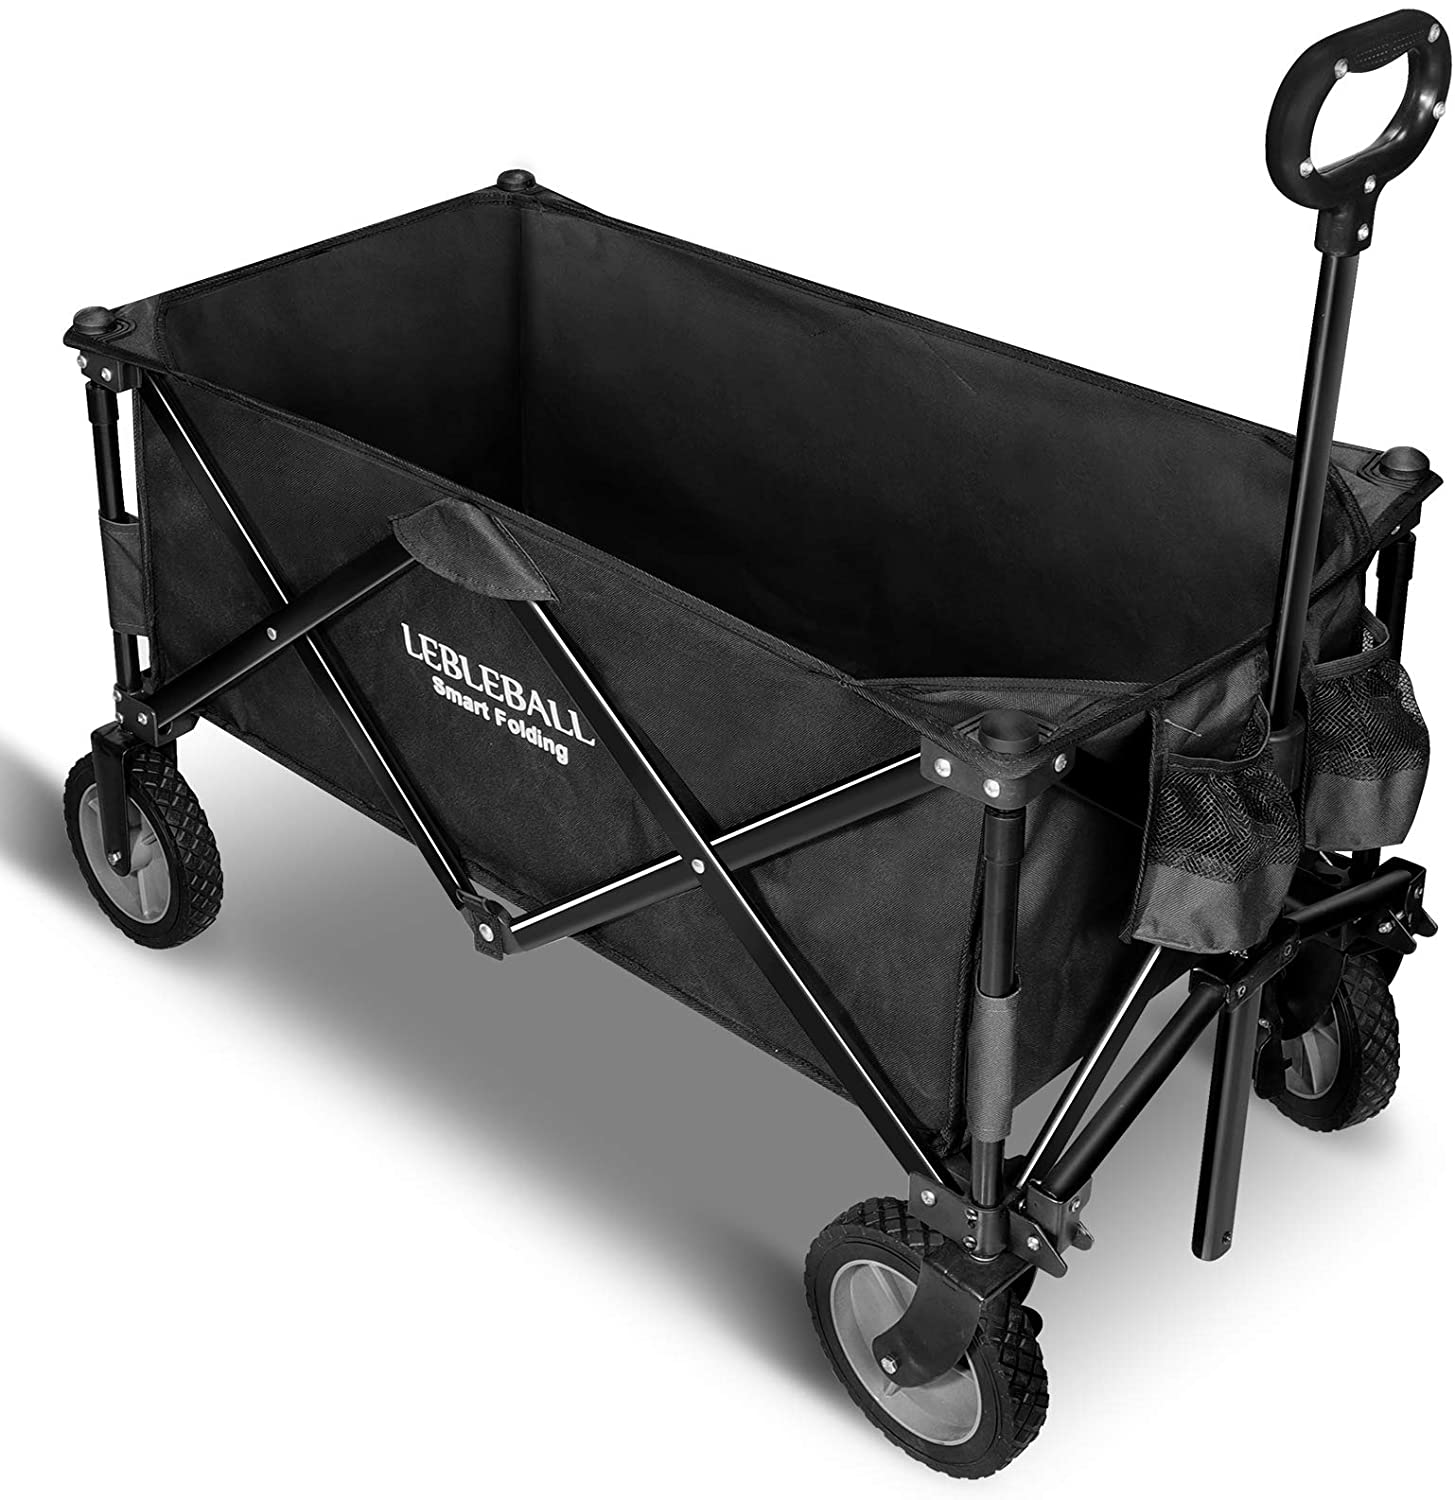 LEBLEBALL Folding Outdoor Utility Wagon Quick Set- Up Heavy Duty Garden Cart Collapsible Wagon Cart with Storage Bags Beach Wagon with Wheels Brake for Camping Garden Beach Picnic, Black